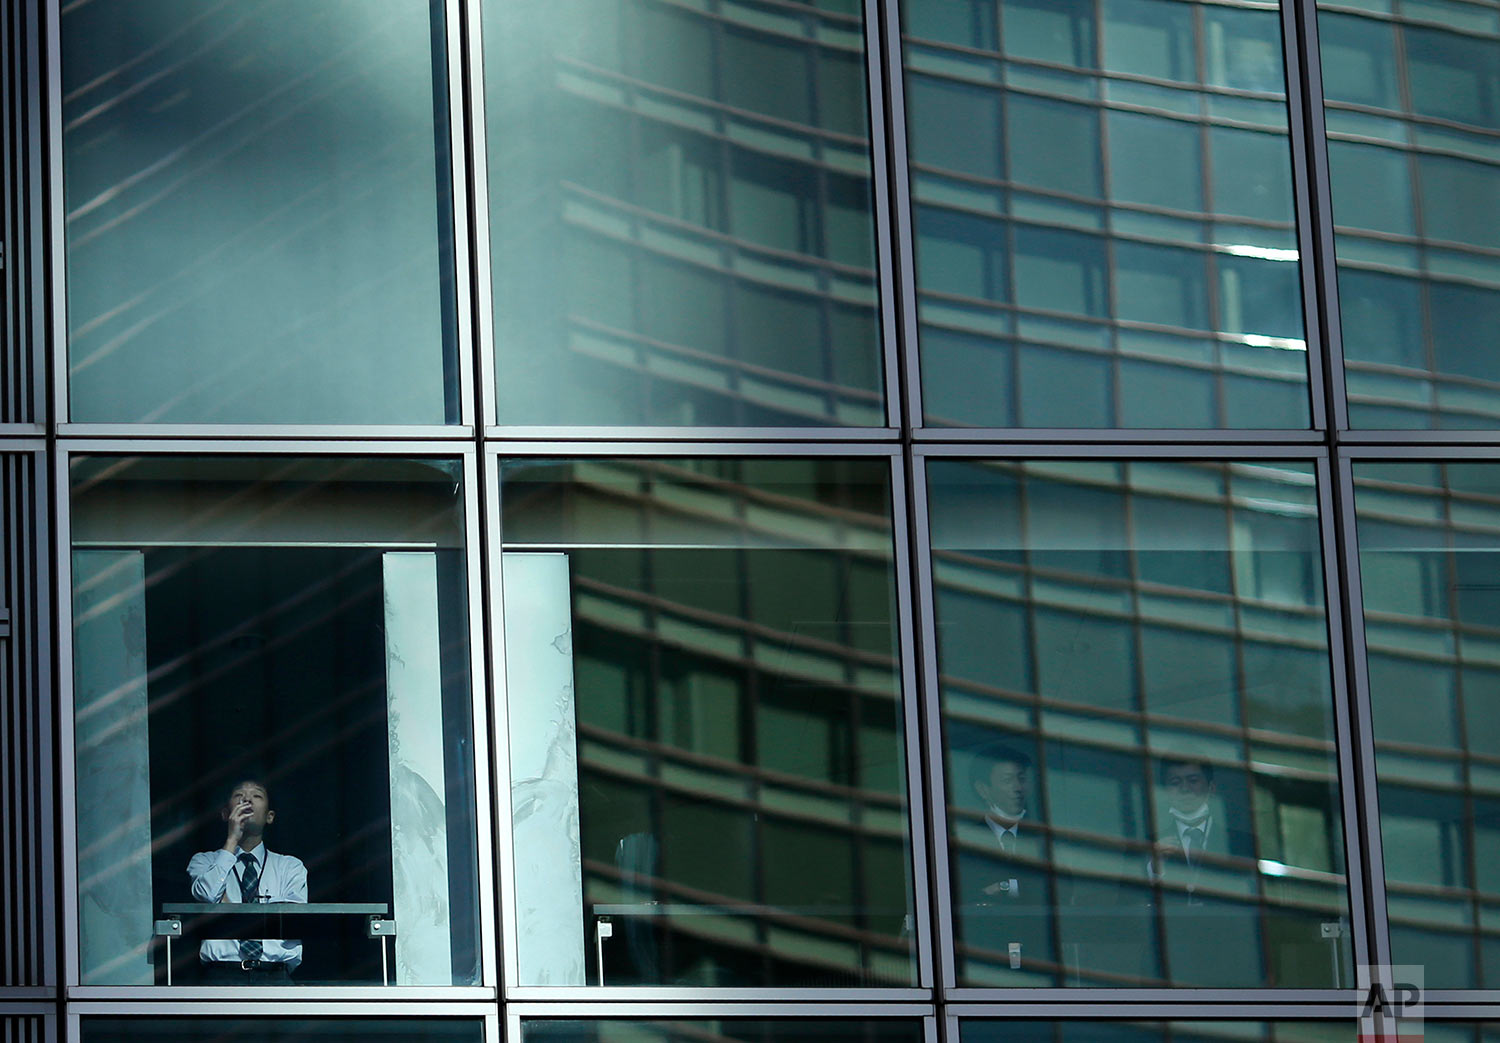 In this Wednesday, Jan. 11, 2017 photo, an employee smokes at the window of a high-rise building in a Tokyo's business area. (AP Photo/Shuji Kajiyama)